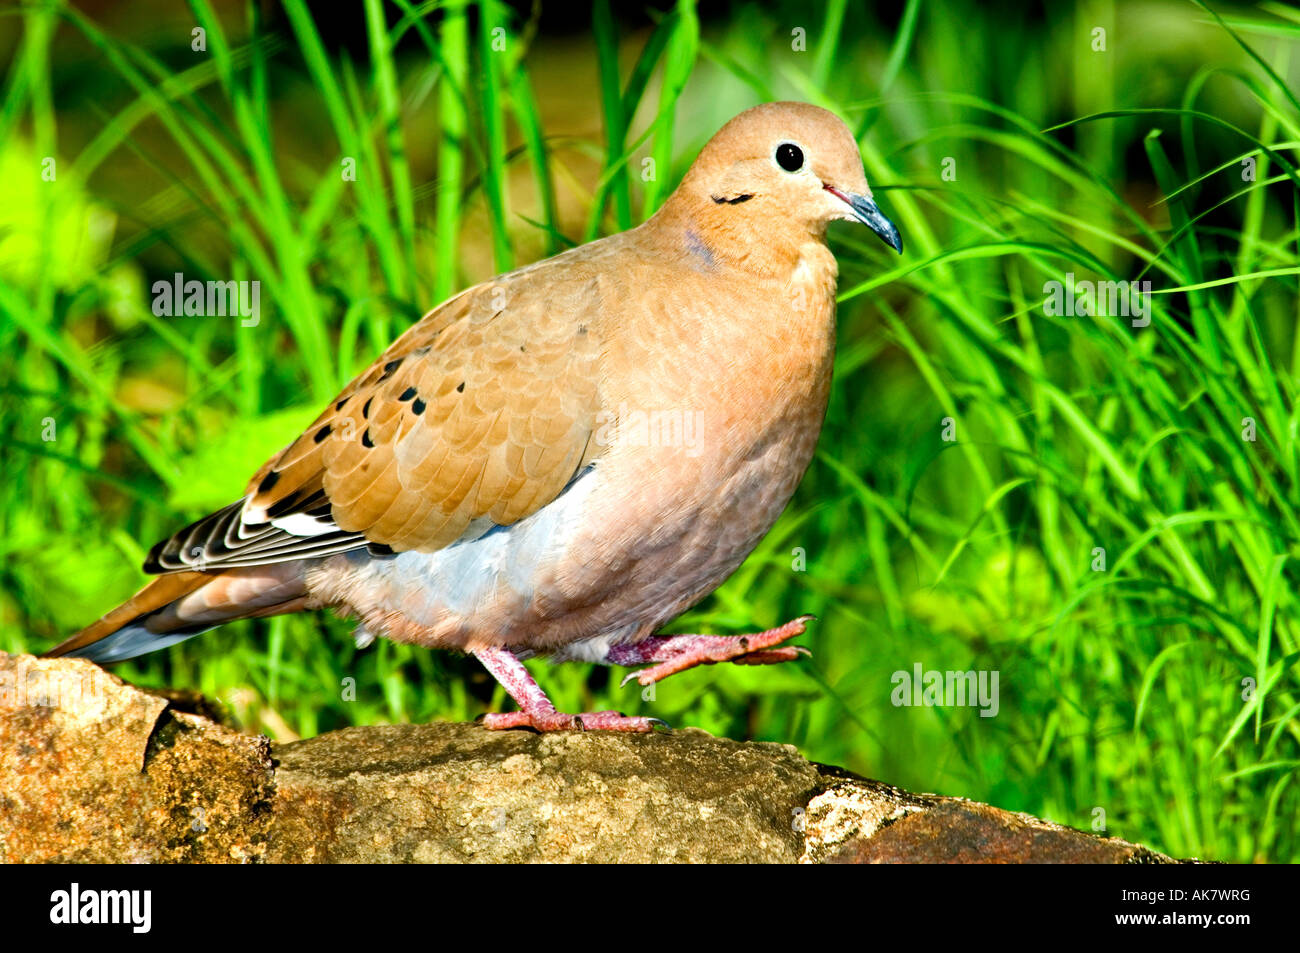 A Zenaida dove walking on a ledge Stock Photo